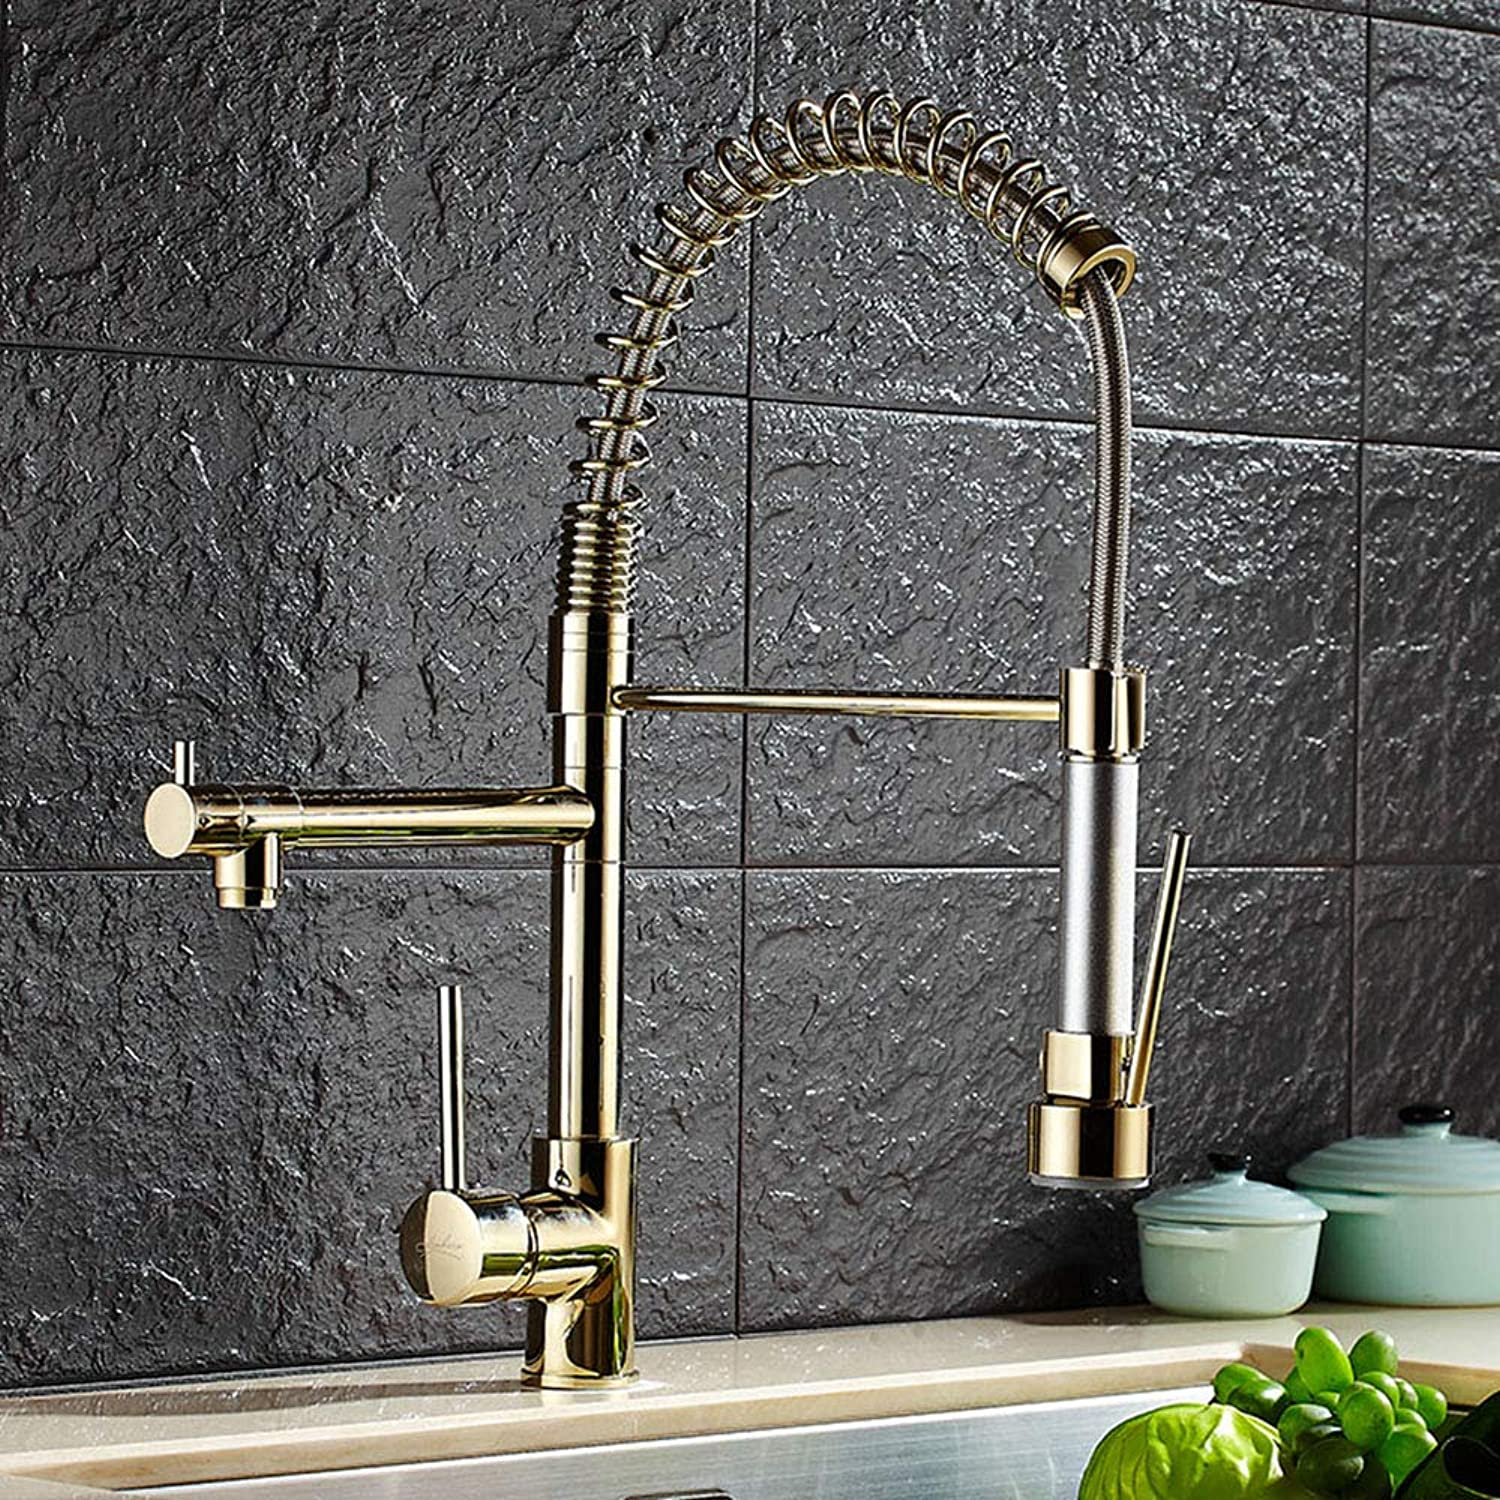 IFELGUD Spring Styl Kitchen Faucet With Pull Out Vessel Sink Mixer Tap Deck Mounted Kitchen Robinet golden Faucet